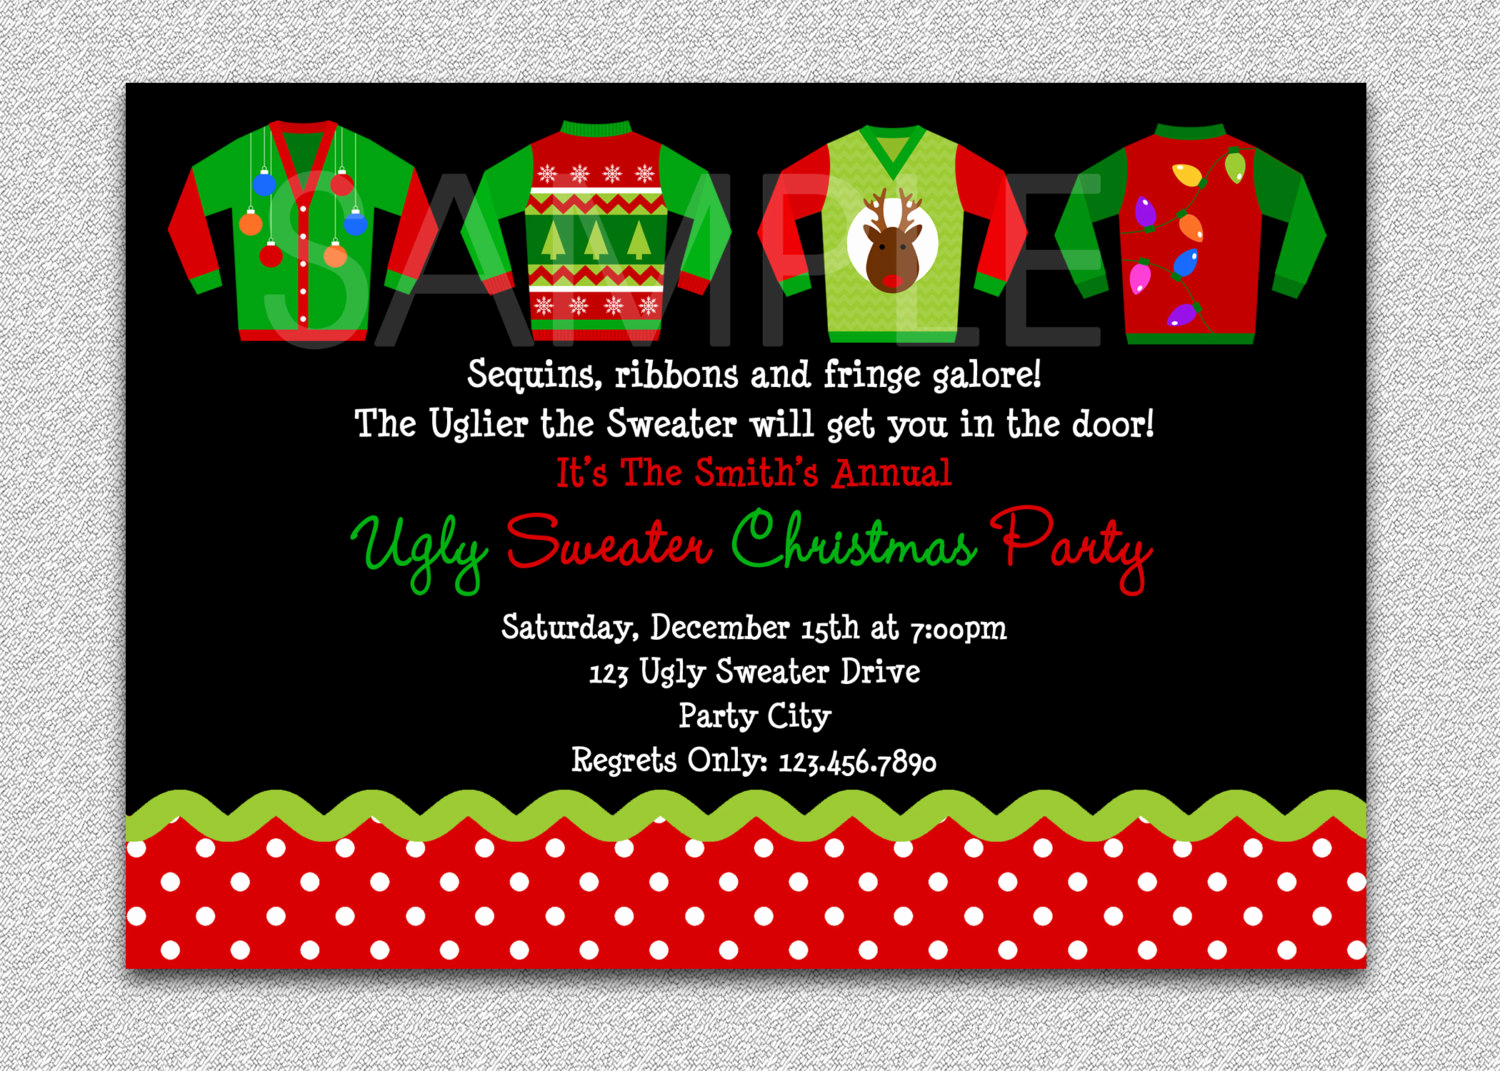 Ugly Sweater Party Invitation Free Elegant Ugly Sweater Party Invitation Holiday by thetrendybutterfly